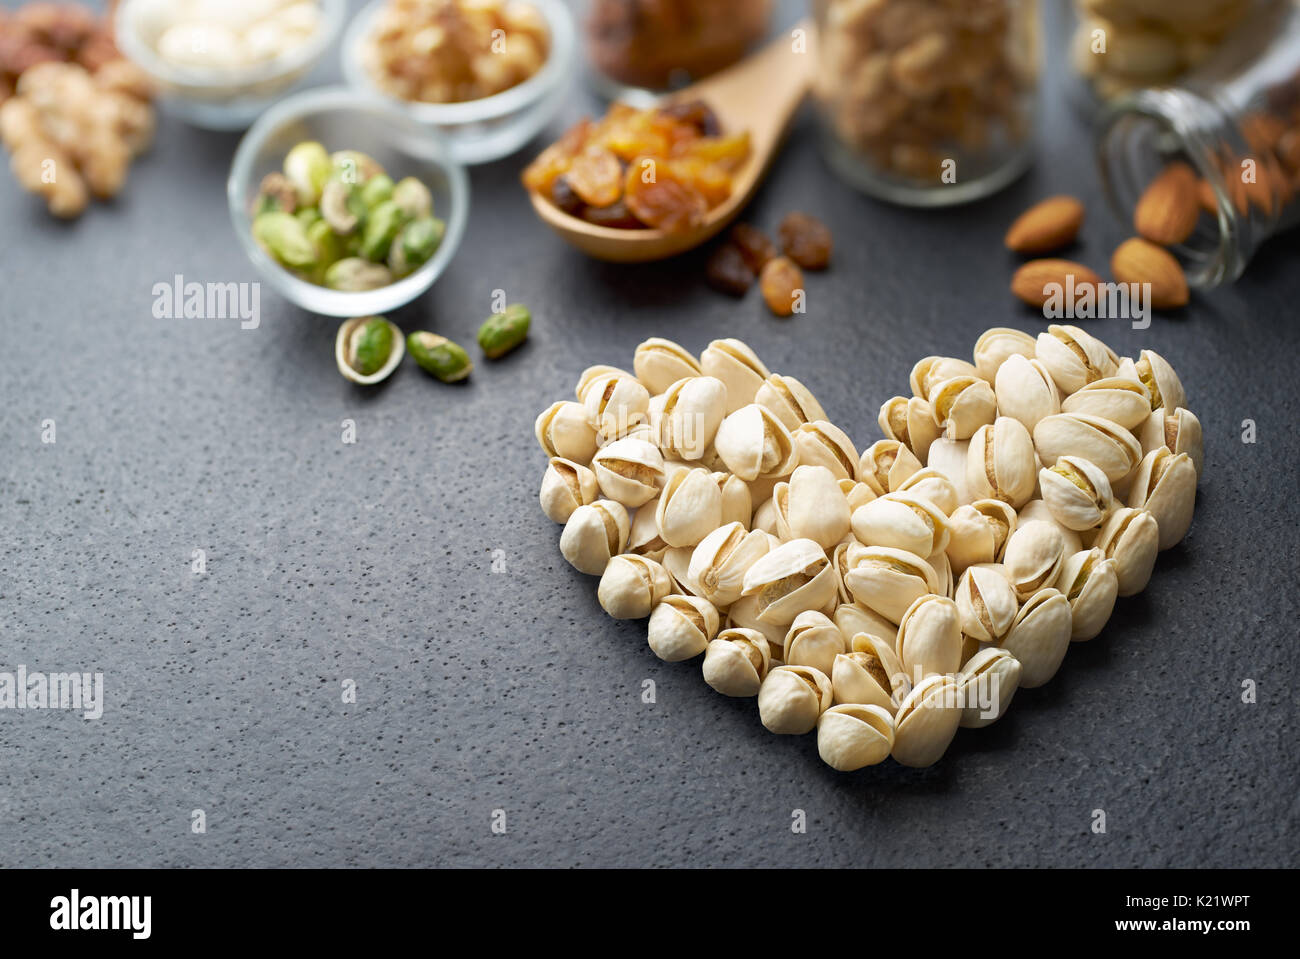 Pistachio nuts forming a heart-shape on slate background - Stock Image